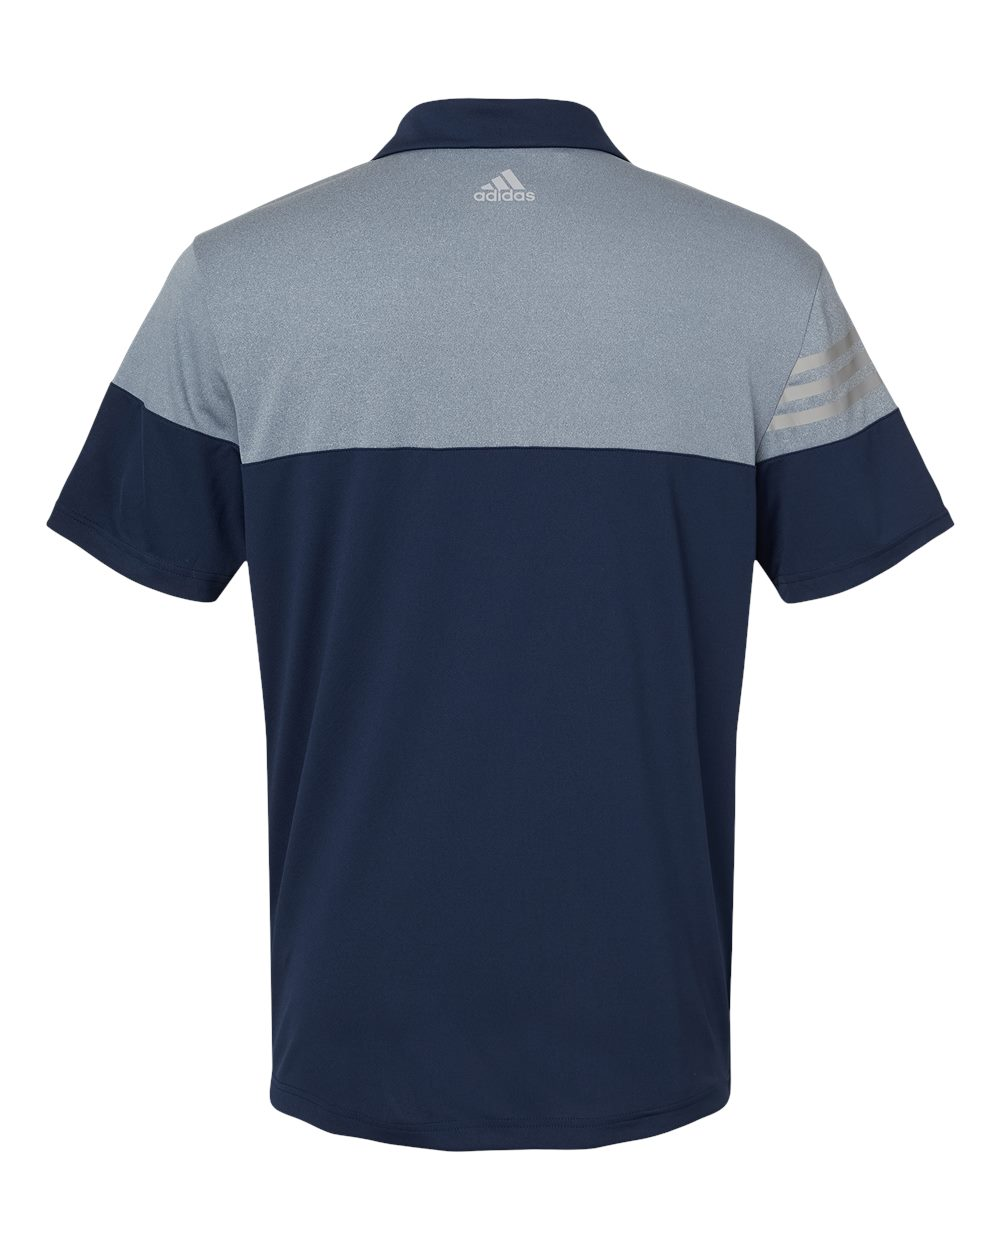 Adidas-Heather-3-Stripes-Block-Sport-Shirt-Polo-Button-A213-up-to-3XL thumbnail 16